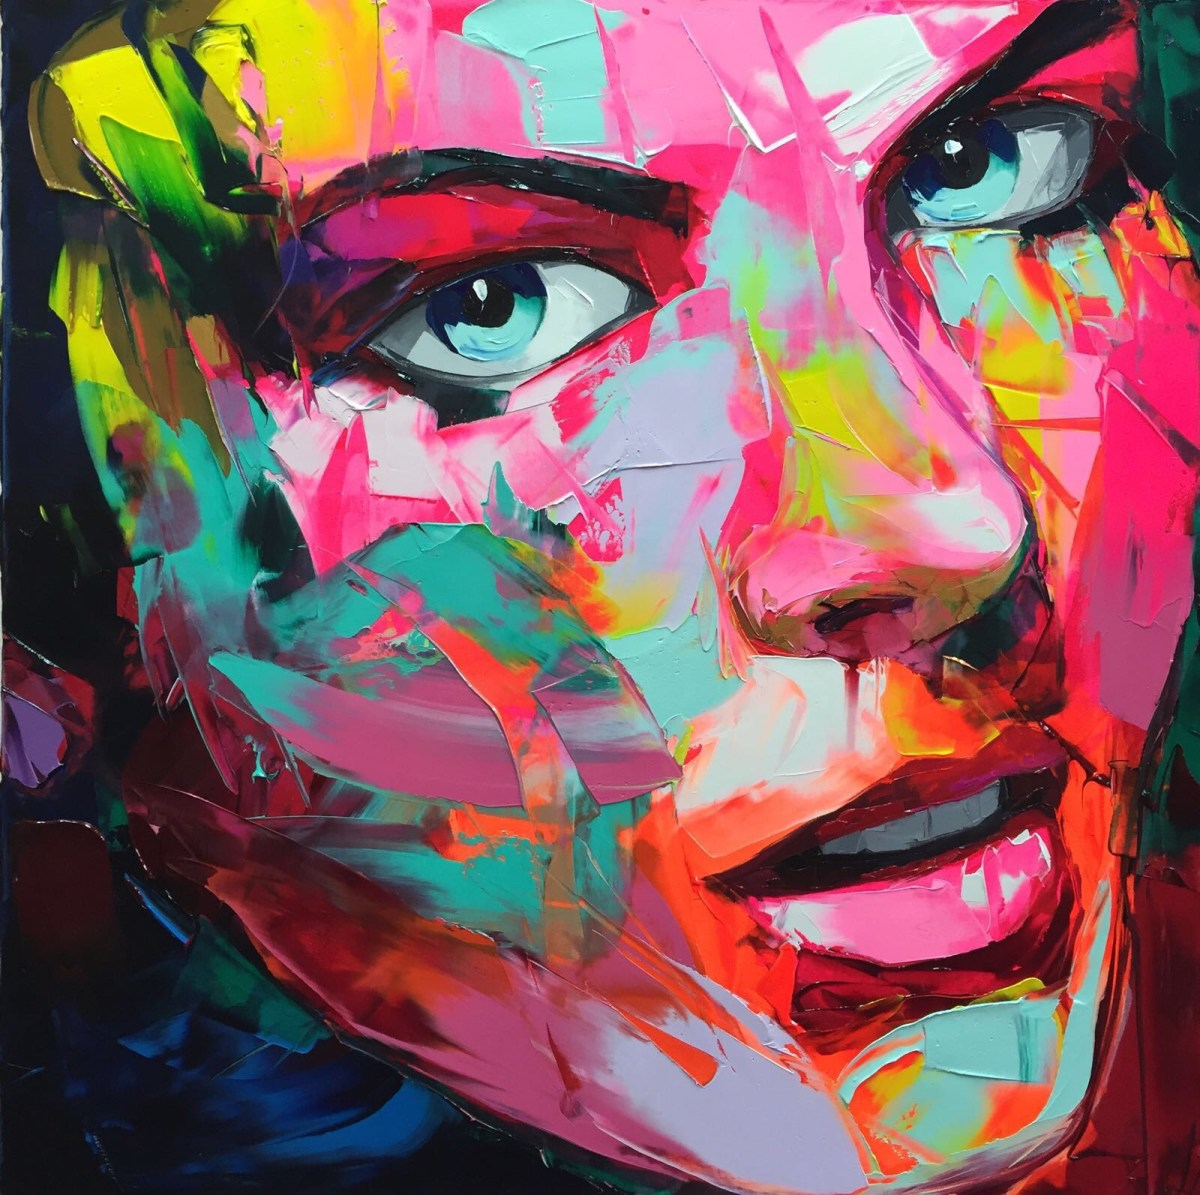 vivid-portraits-nielly-francoise-moss-and-fog-3